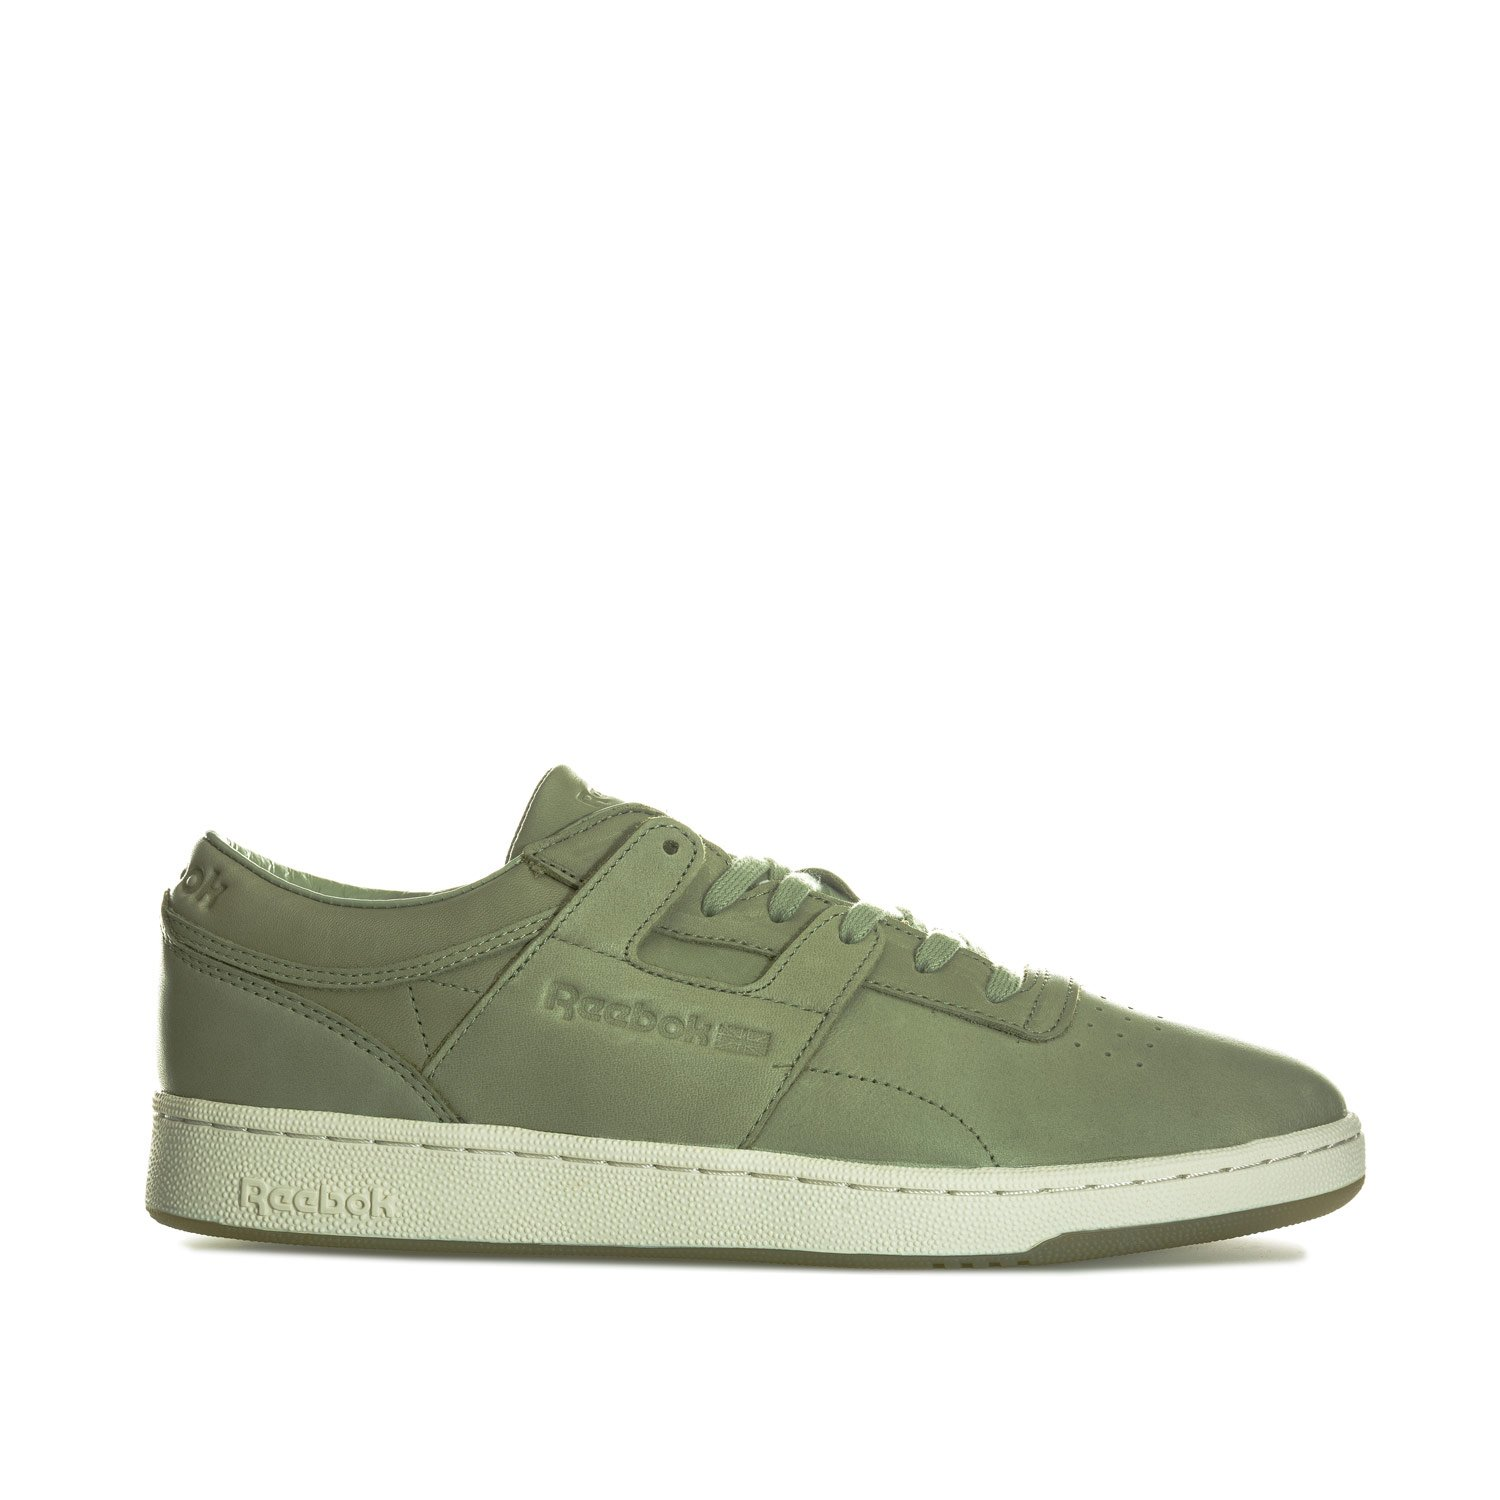 448a80e5e7c76 Reebok Mens Classics Mens Club Workout Trainers in Olive - UK 11.5   Amazon.co.uk  Shoes   Bags